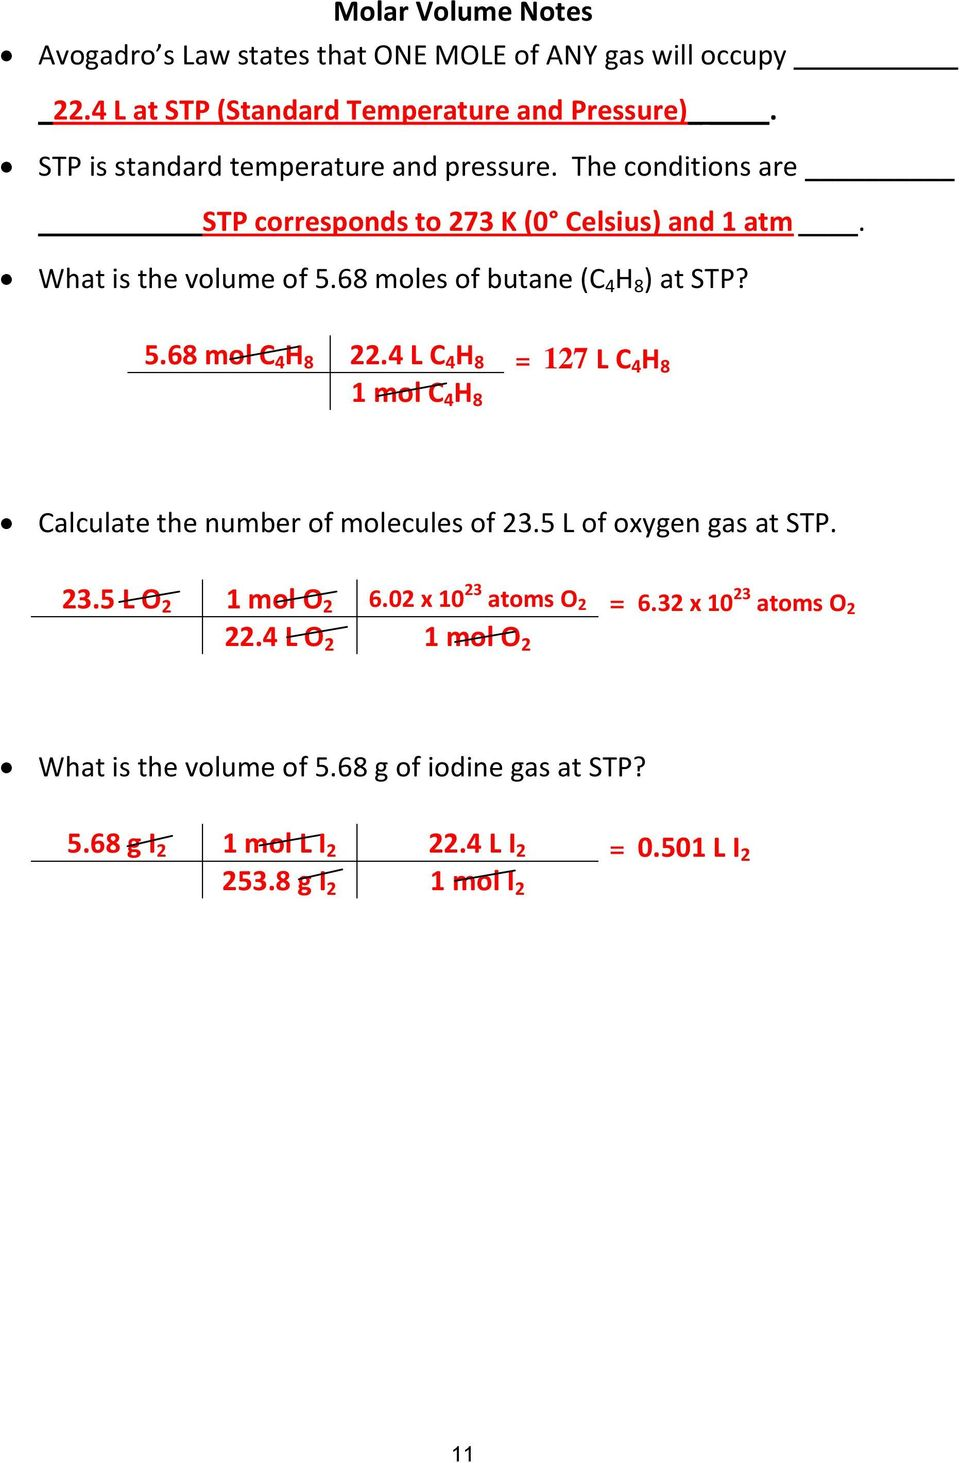 68 moles of butane (C 4 H 8 ) at STP? 5.68 mol C 4 H 8 22.4 L C 4 H 8 = 127 L C 4 H 8 1 mol C 4 H 8 Calculate the number of molecules of 23.